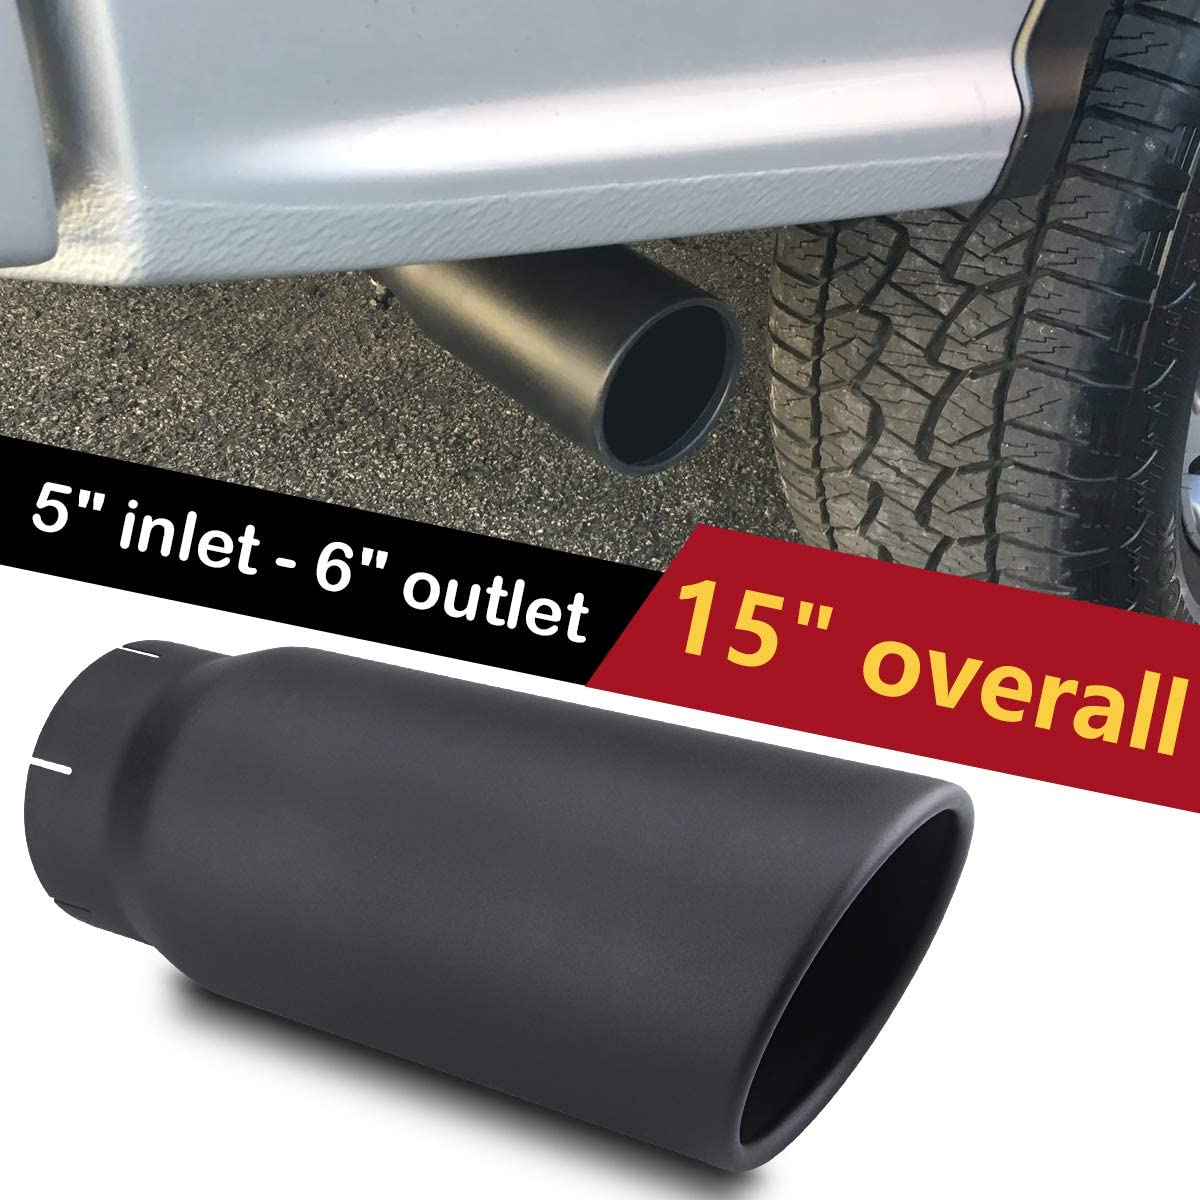 LCGP 5 Inlet x 6 Outlet x 15 Overall Length Clamp On Stainless Steel Universal Polished Diesel Exhaust Tailpipe Tip 5 Inch Inlet Exhaust Tip